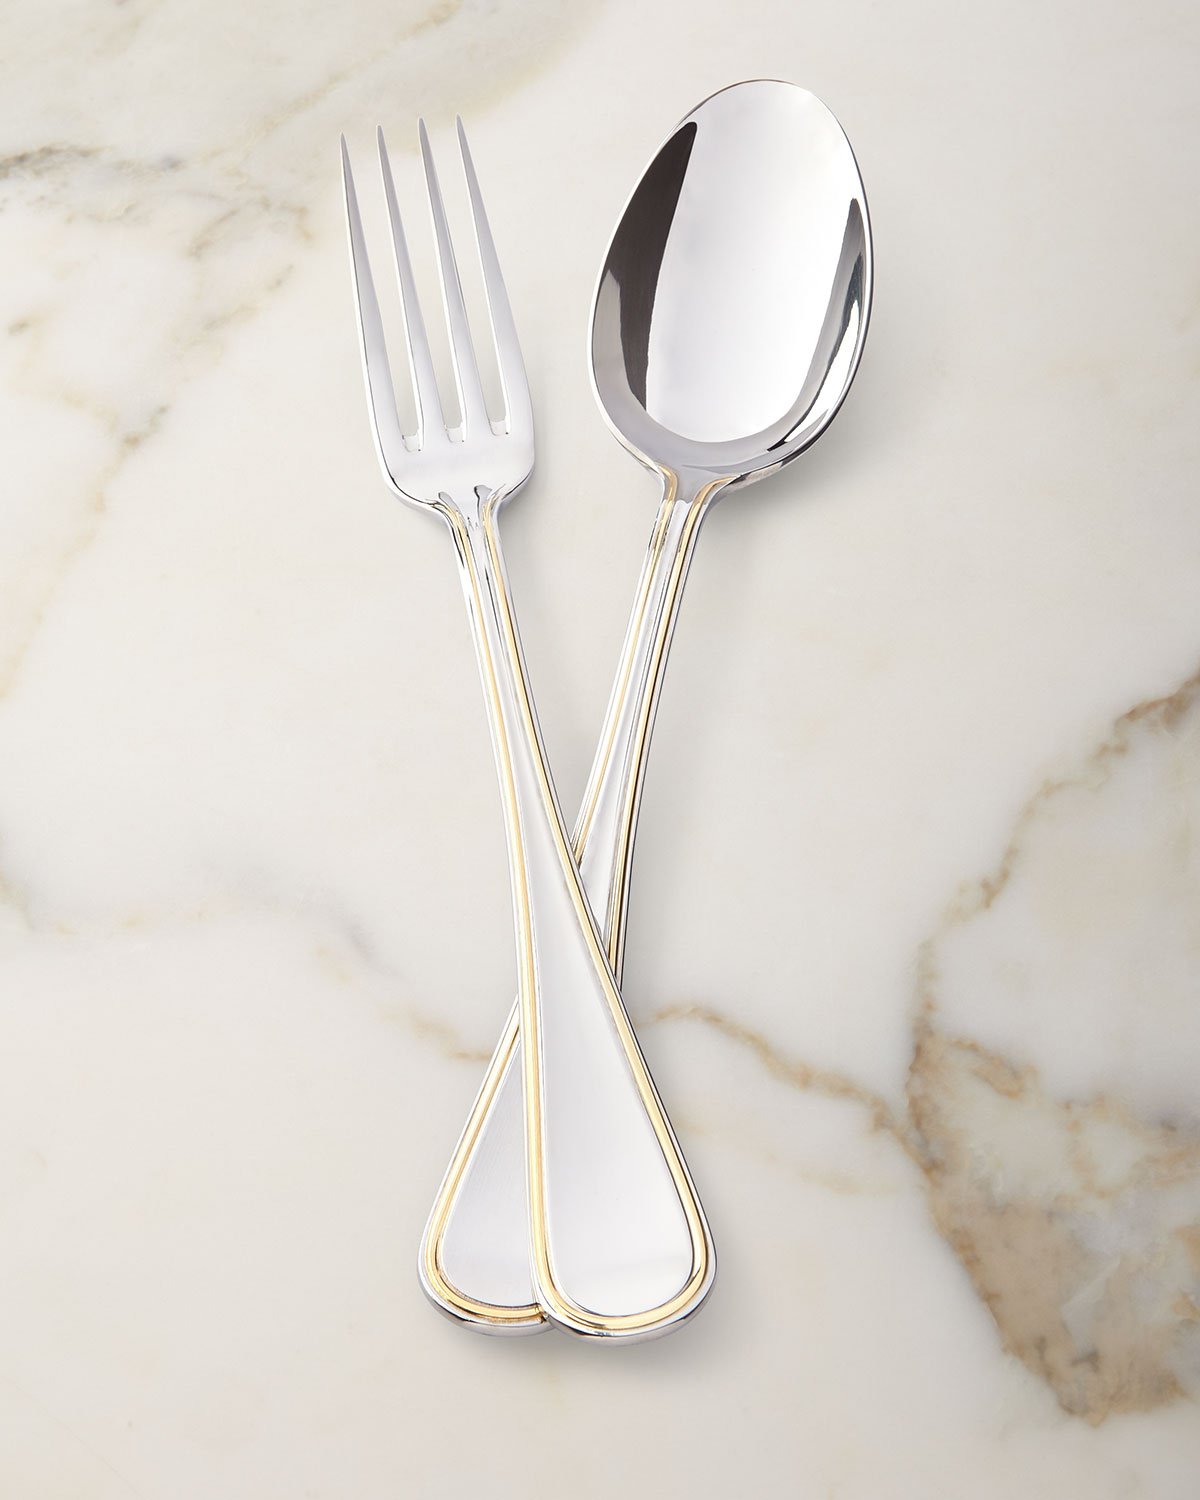 Ricci Silversmith Ascot Gold Serving Spoon